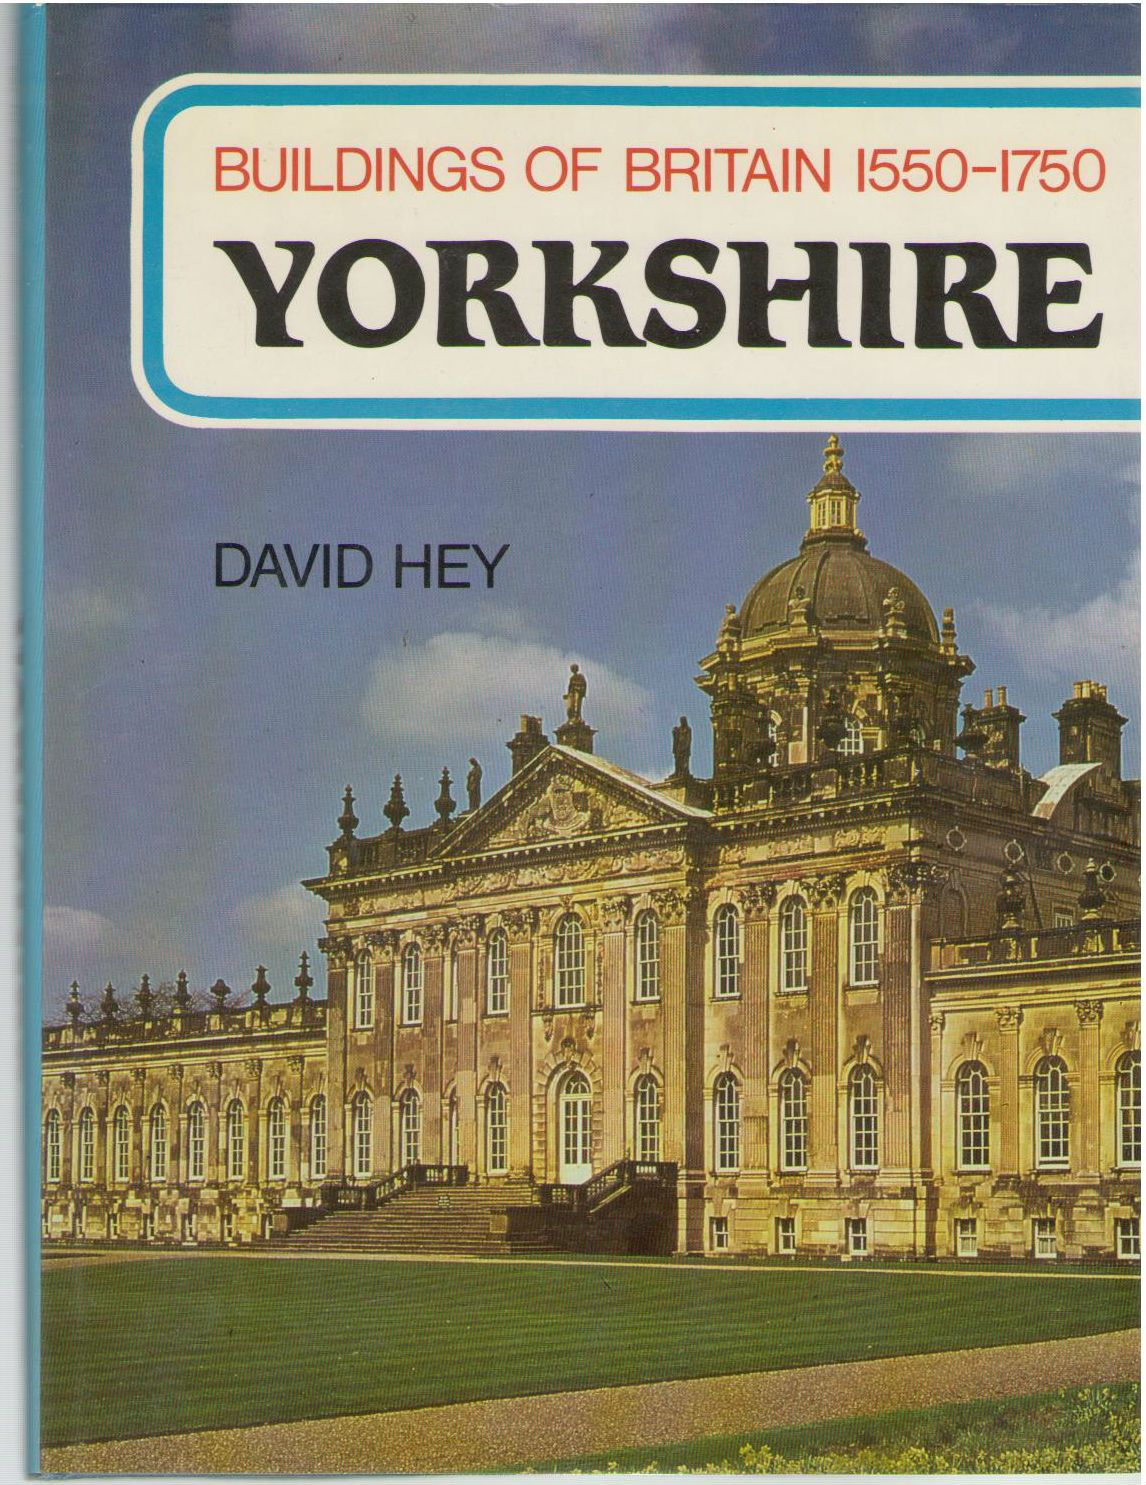 Buildings of Britain, 1550-1750 : Yorkshire, Hey, David